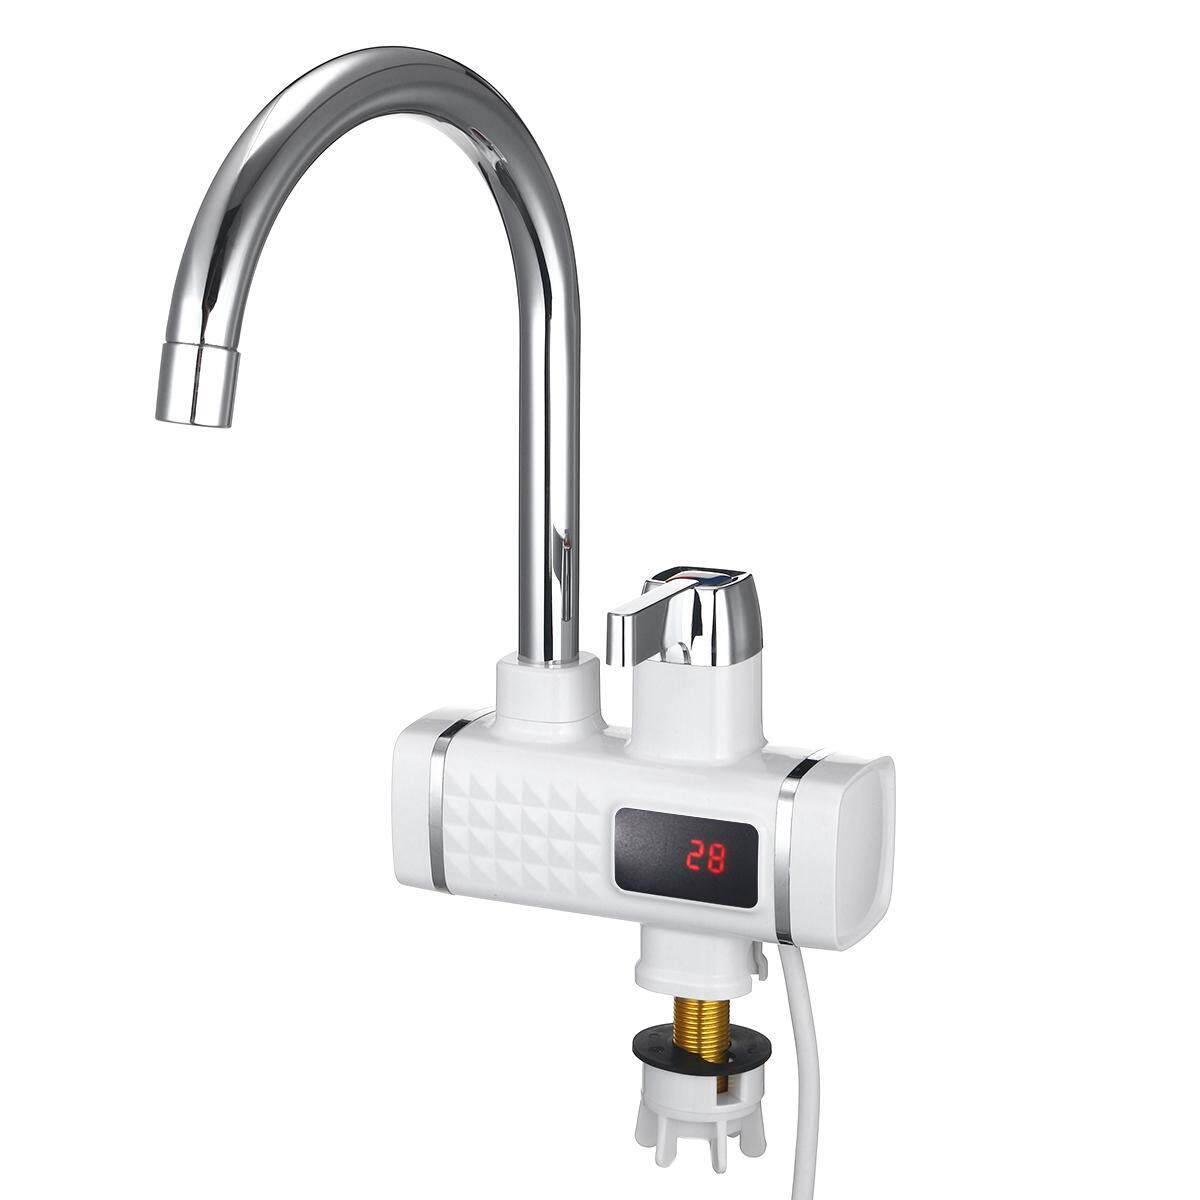 Electric Faucet Tap Hot Water Heater Instant For Home Bathroom Kitchen - intl